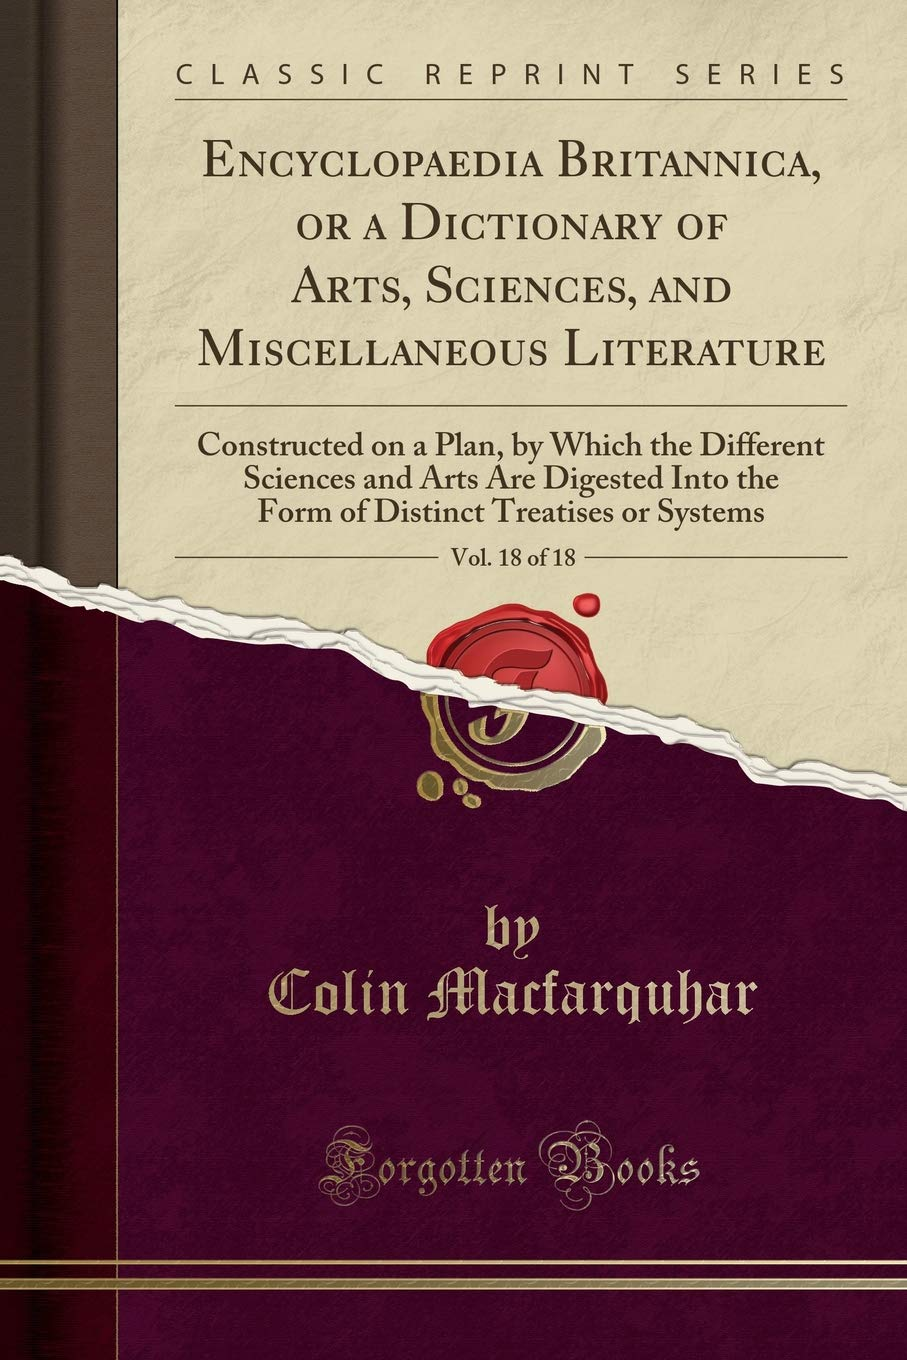 Read Online Encyclopaedia Britannica, or a Dictionary of Arts, Sciences, and Miscellaneous Literature, Vol. 18 of 18: Constructed on a Plan, by Which the ... Treatises or Systems (Classic Reprint) pdf